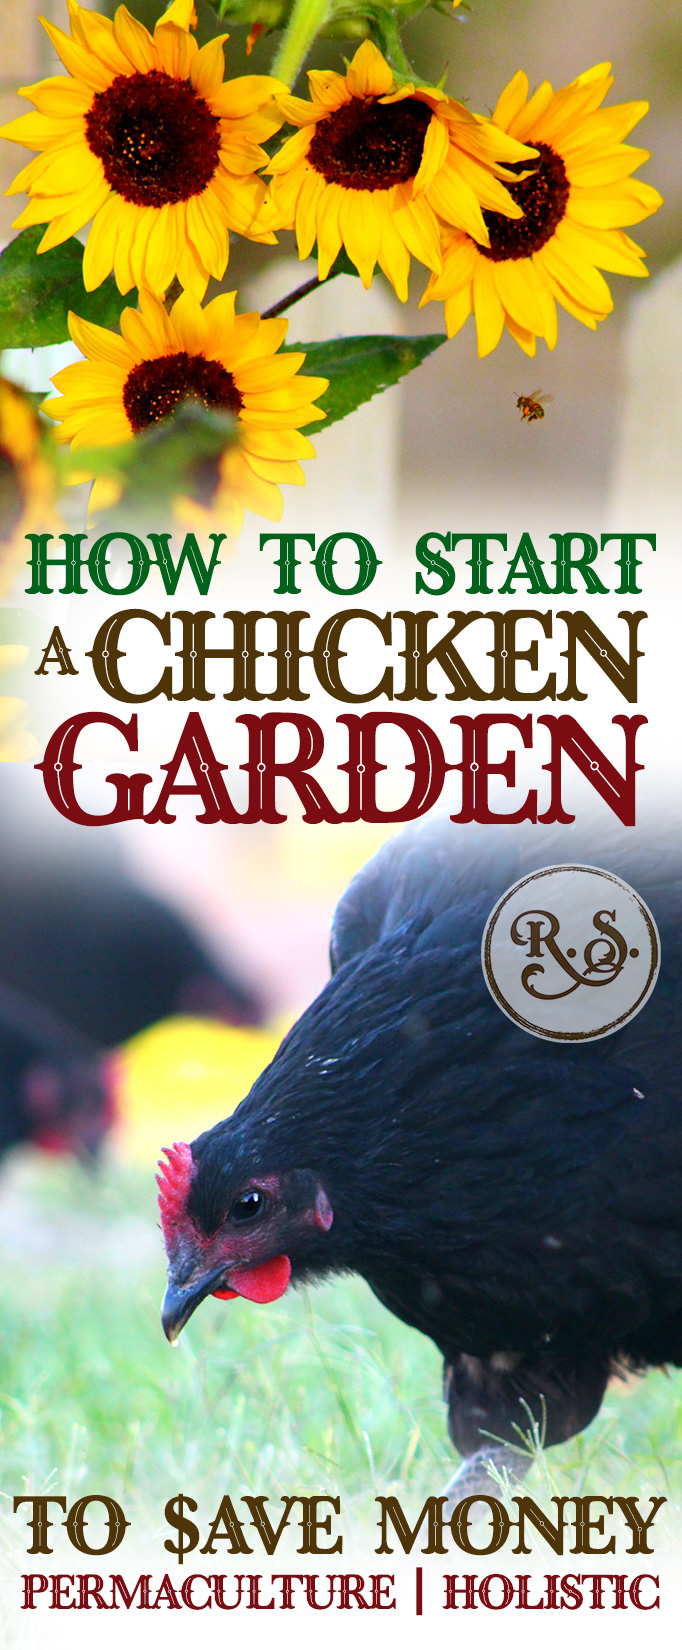 Learn how to grow a sustainable garden for your backyard chickens to save money on their feed bill. Plant shrubs, trees & herbs for a permaculture homestead. Great DIY ideas for beginners & beyond.